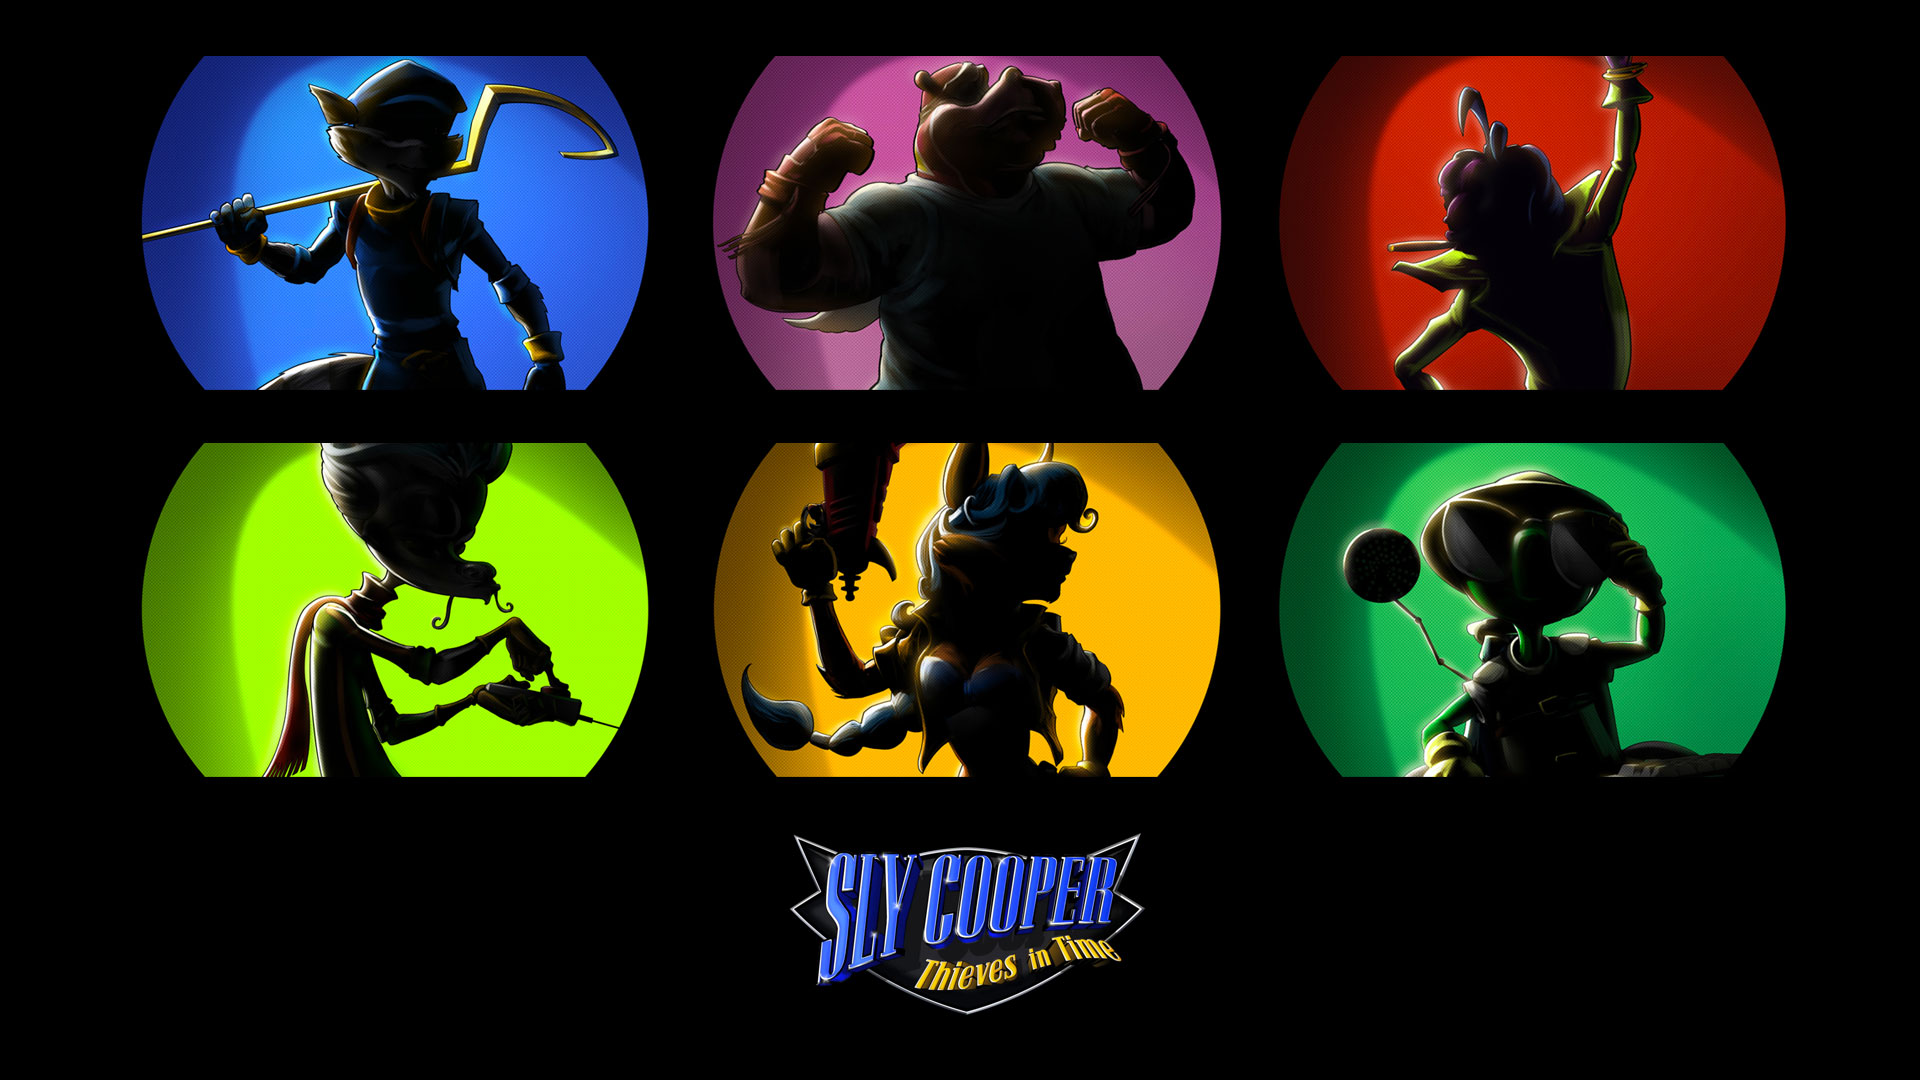 Sly Cooper Thieves in Time Wallpapers in HD Page 4 1920x1080